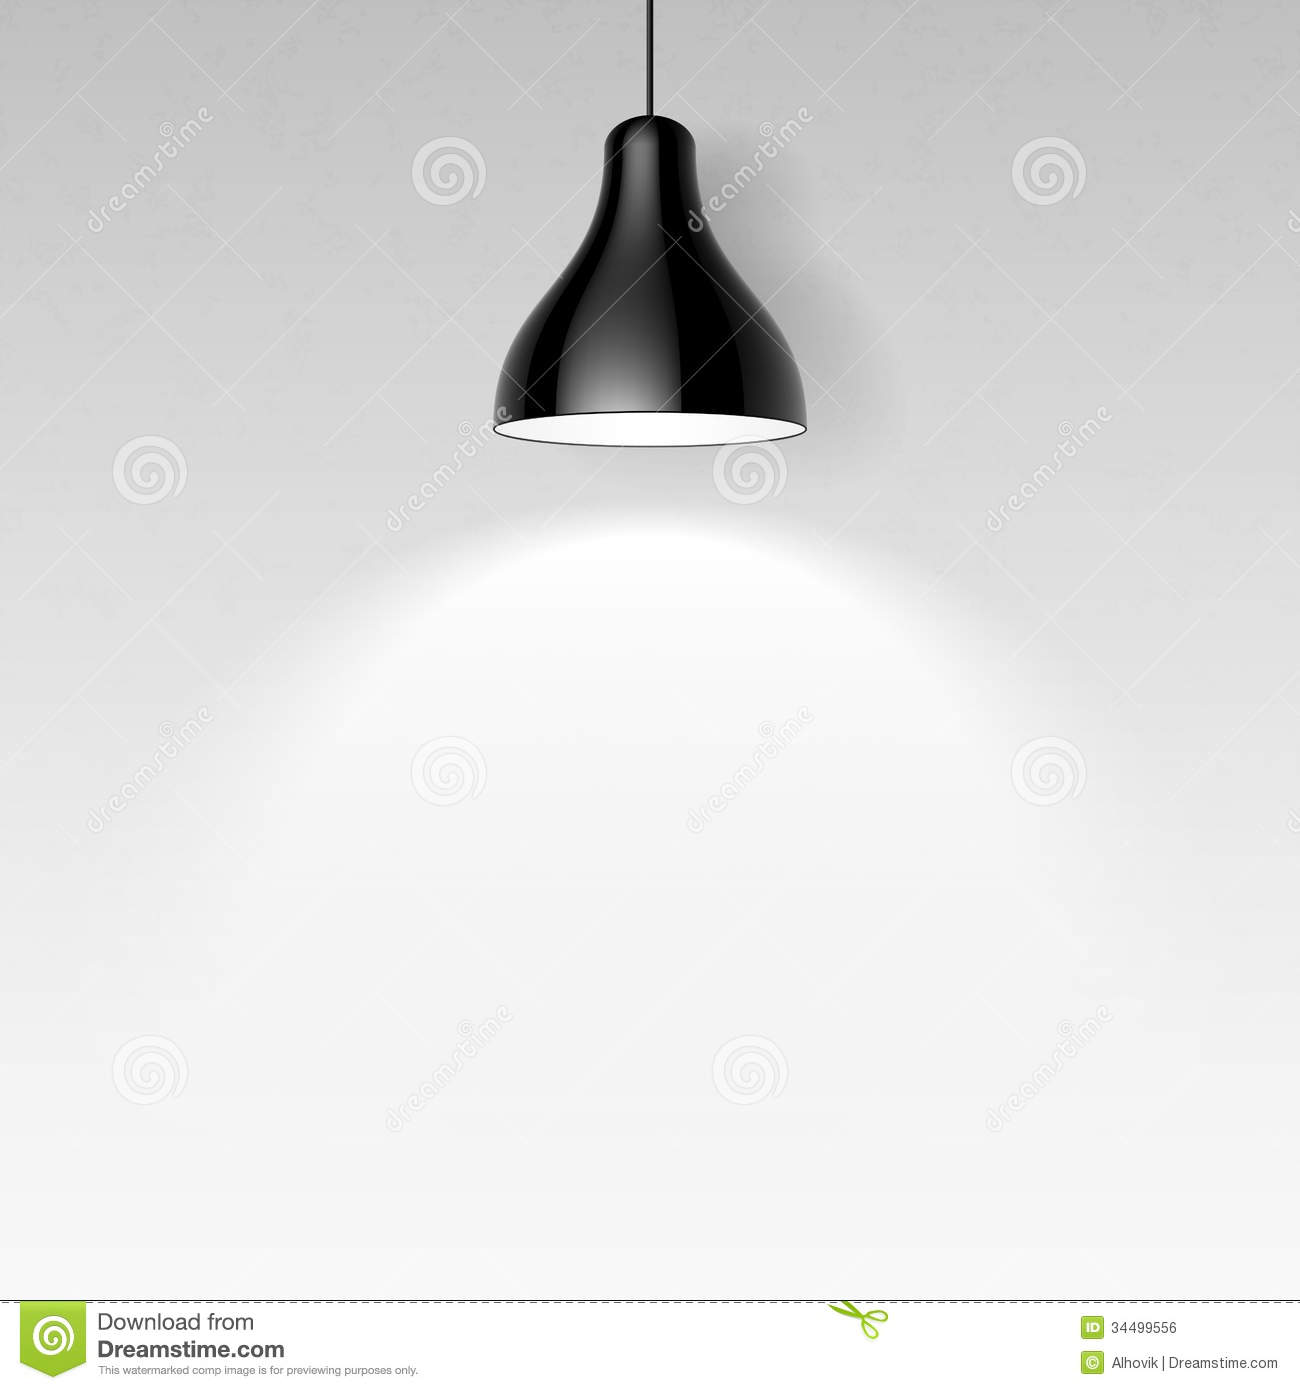 Black Ceiling Lamp Royalty Free Stock Image